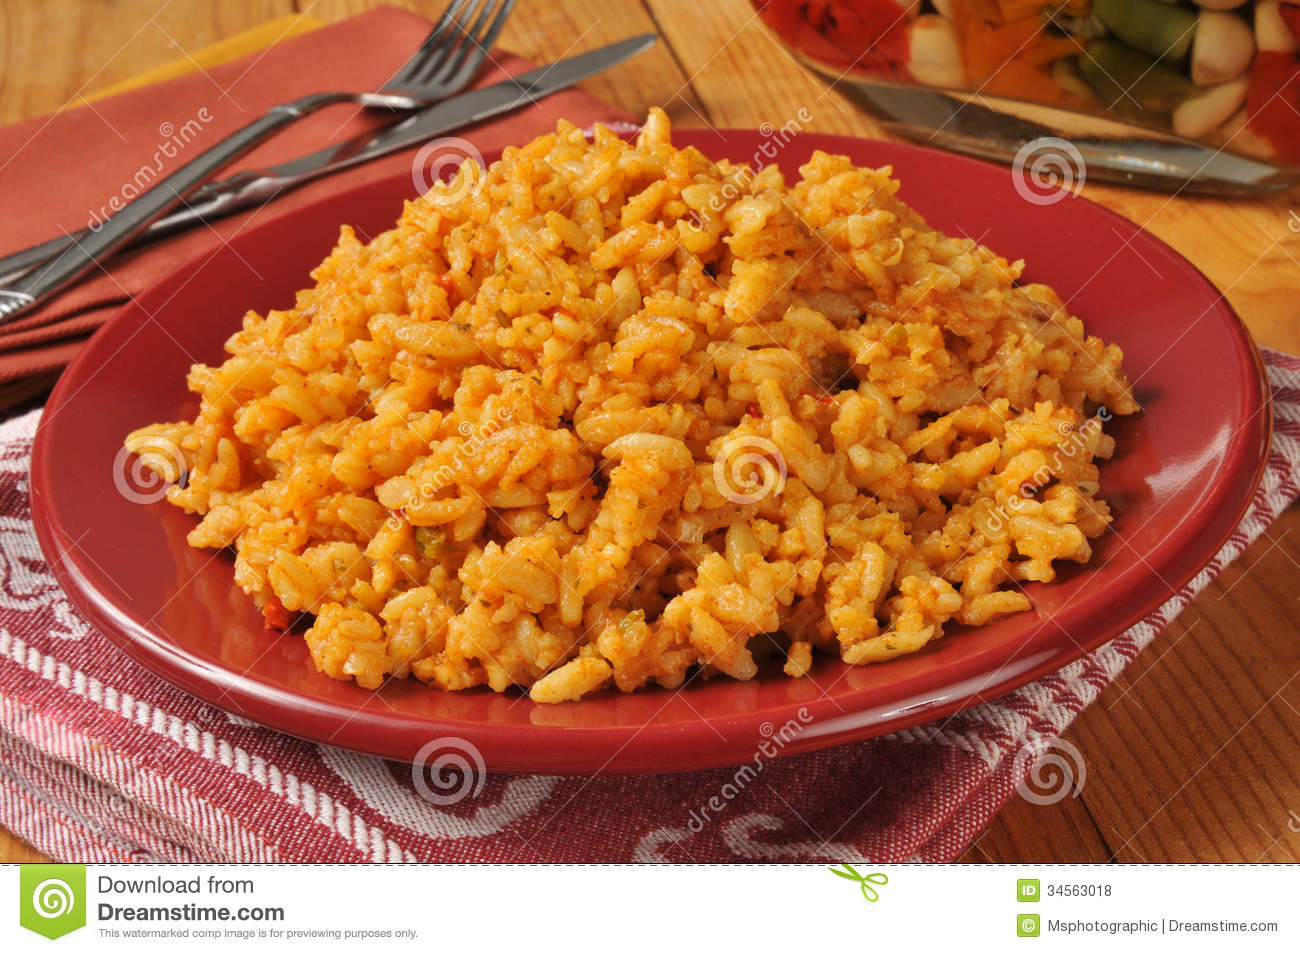 Mexican Rice stock photo. Image of rice, horizontal, plate.